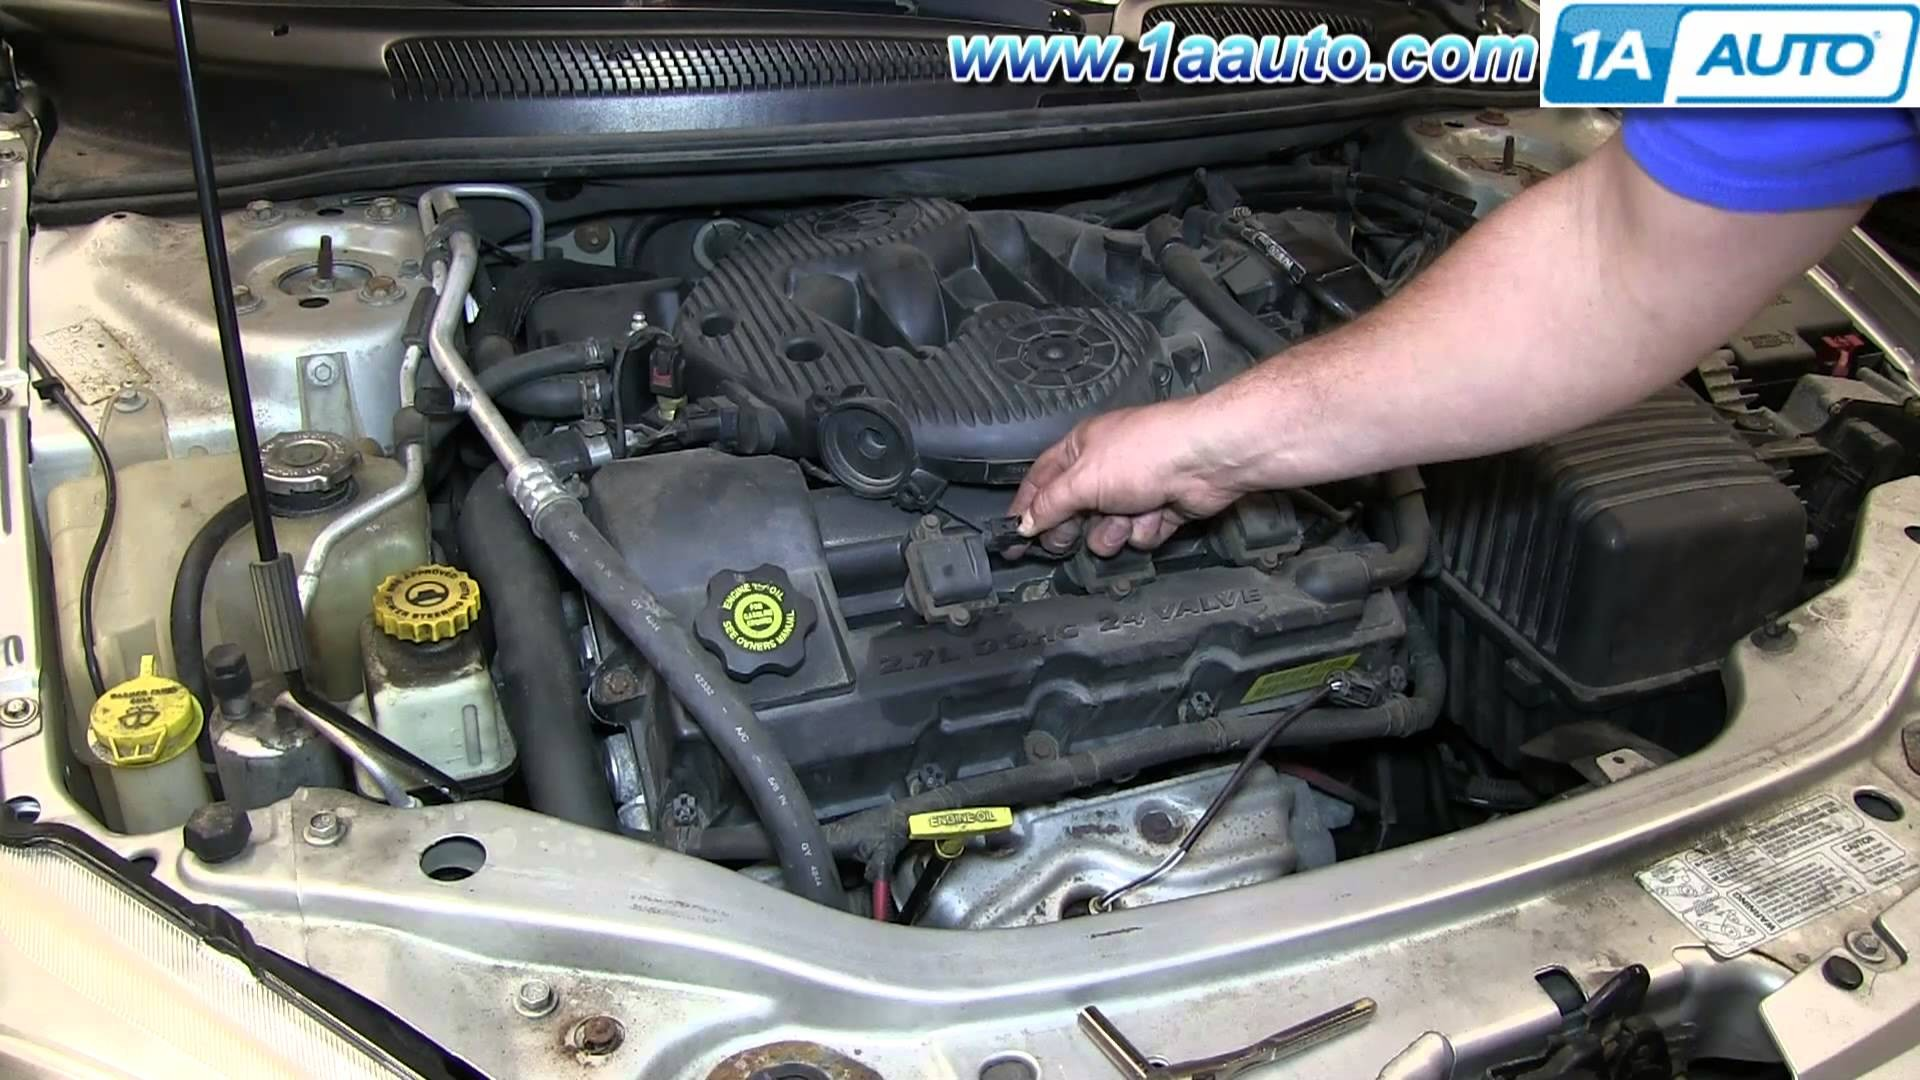 2006 chrysler sebring wiring diagram real pig heart 2003 pacifica engine best site harness